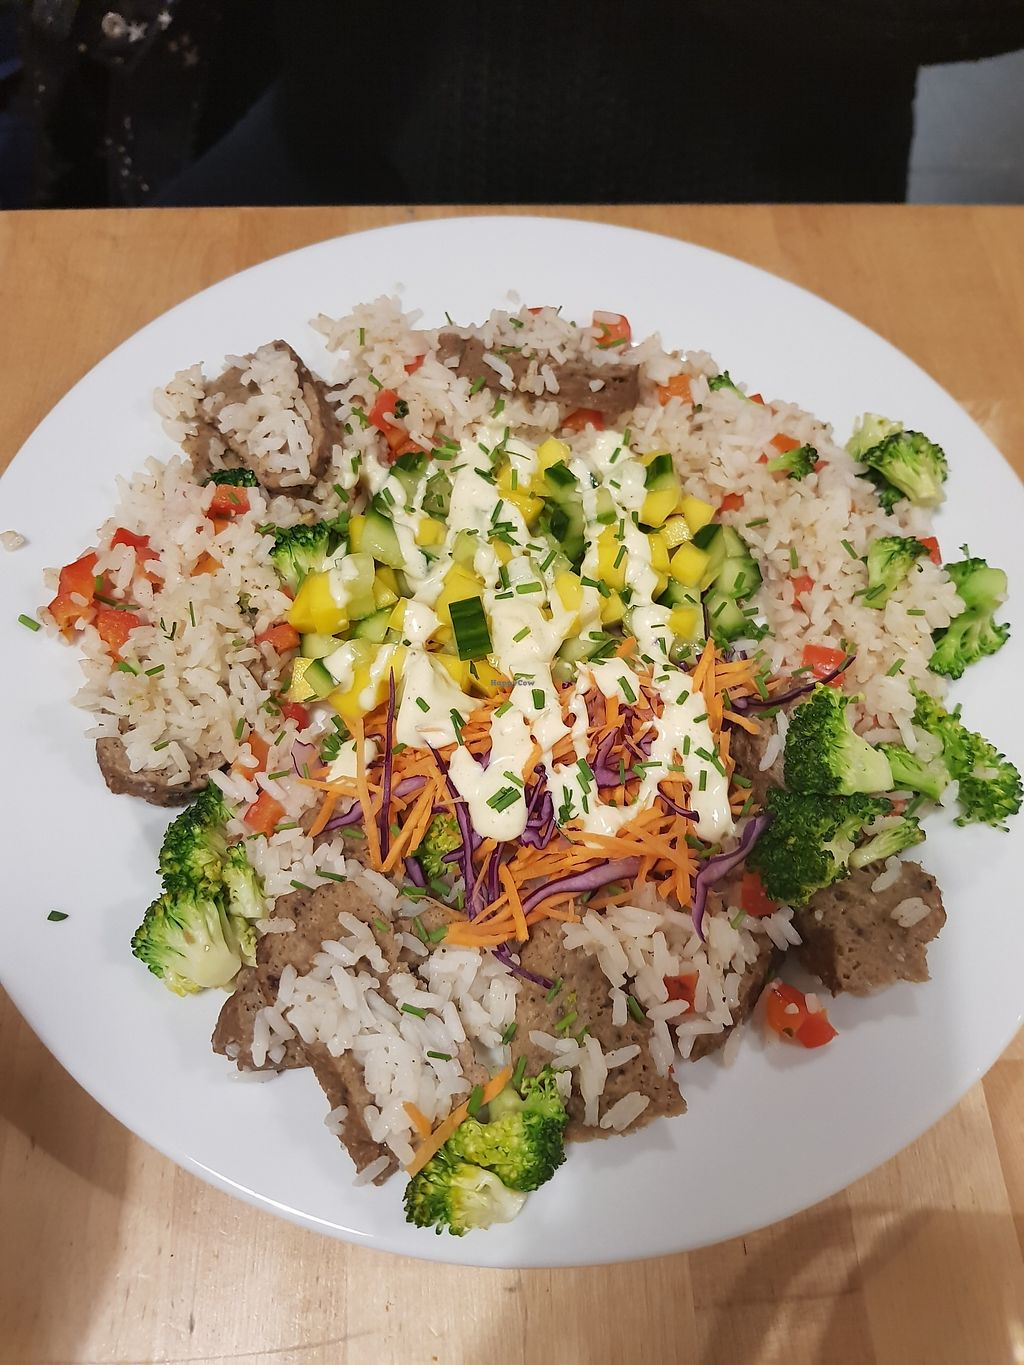 """Photo of Lokal Vegan Bistro  by <a href=""""/members/profile/Mirage"""">Mirage</a> <br/>Seitan jerk <br/> February 9, 2018  - <a href='/contact/abuse/image/55545/356703'>Report</a>"""